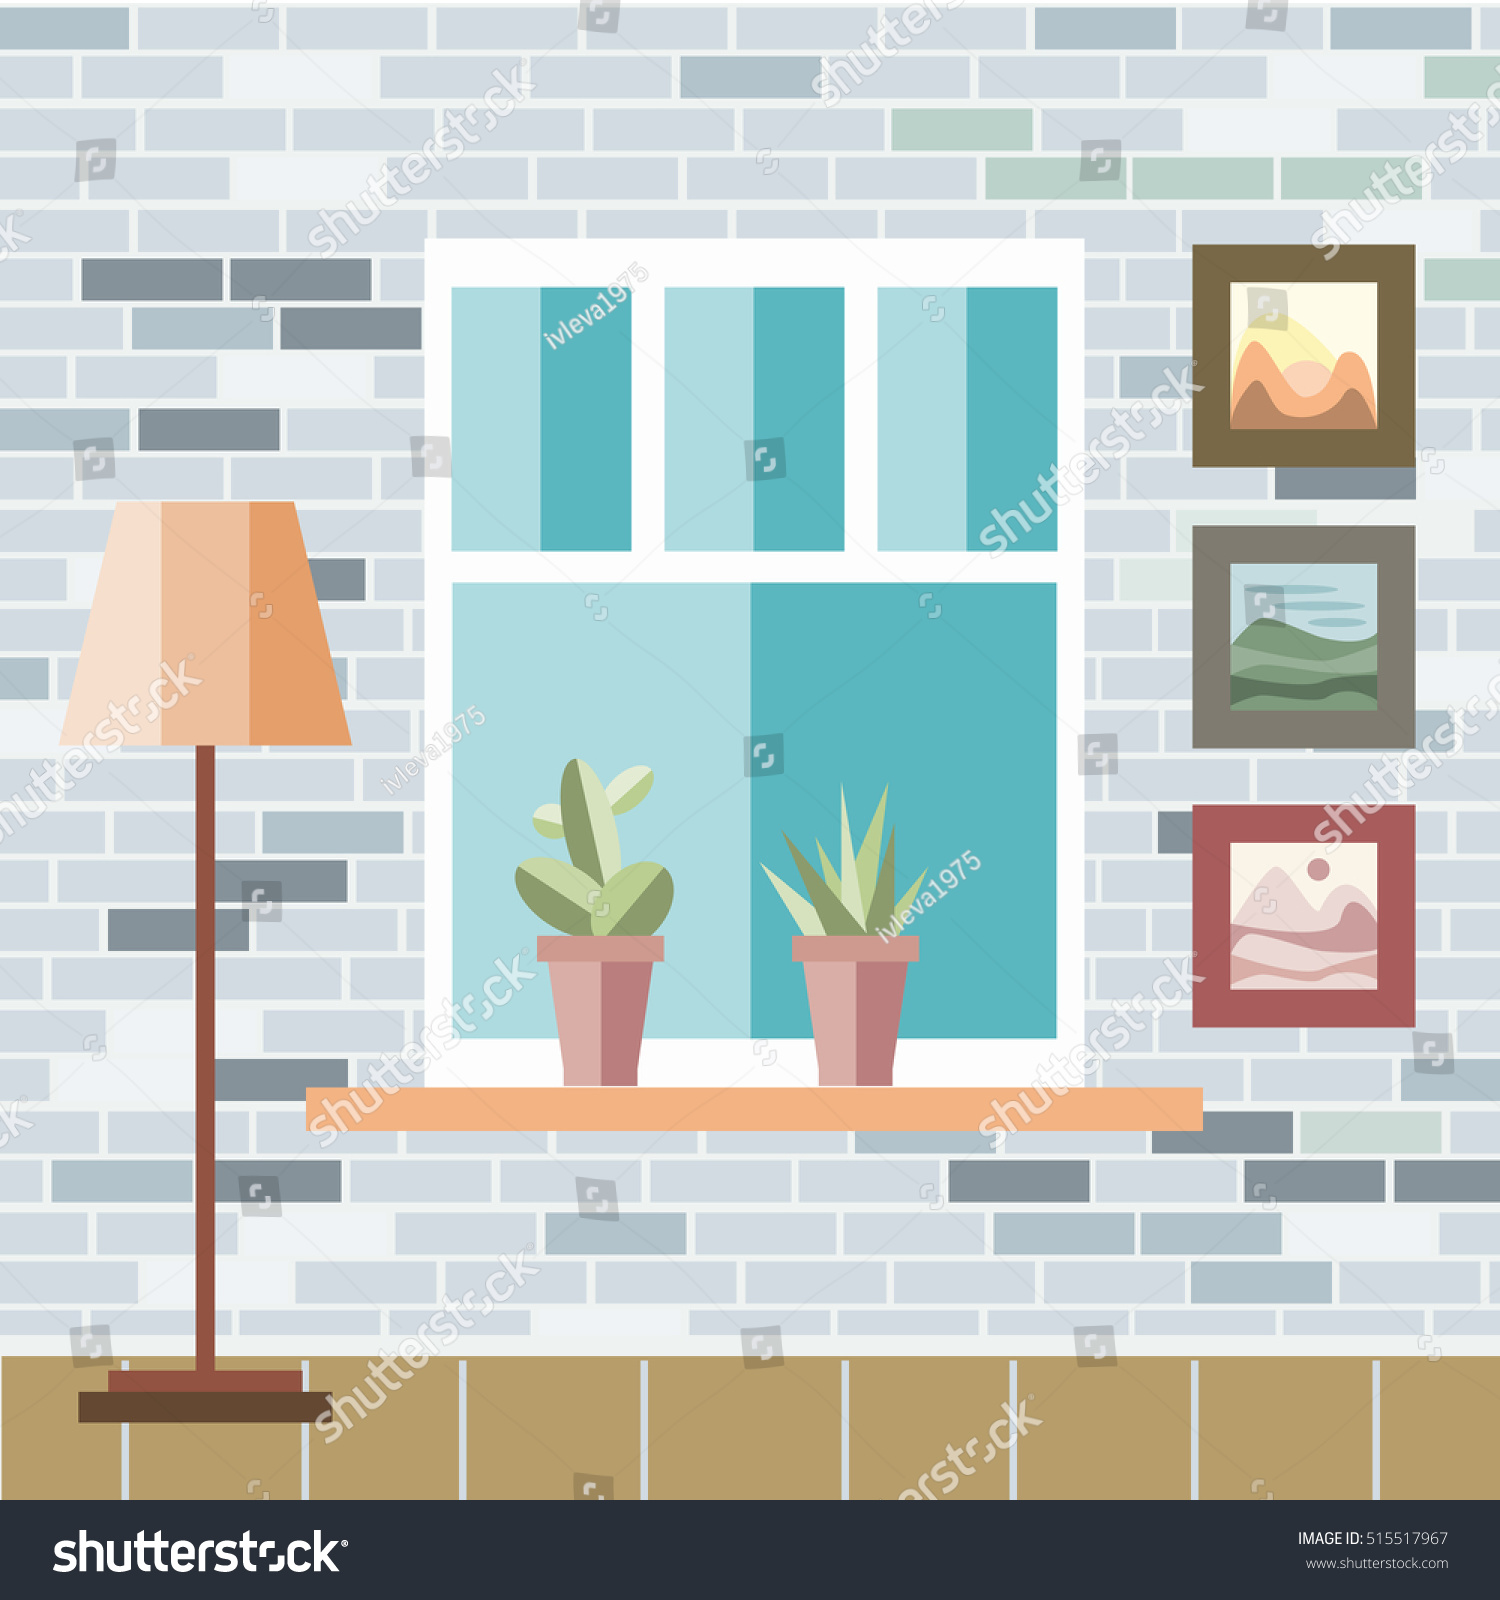 Interior Of A Living Room In Flat Style. Home Room With Brick Wall. Vector